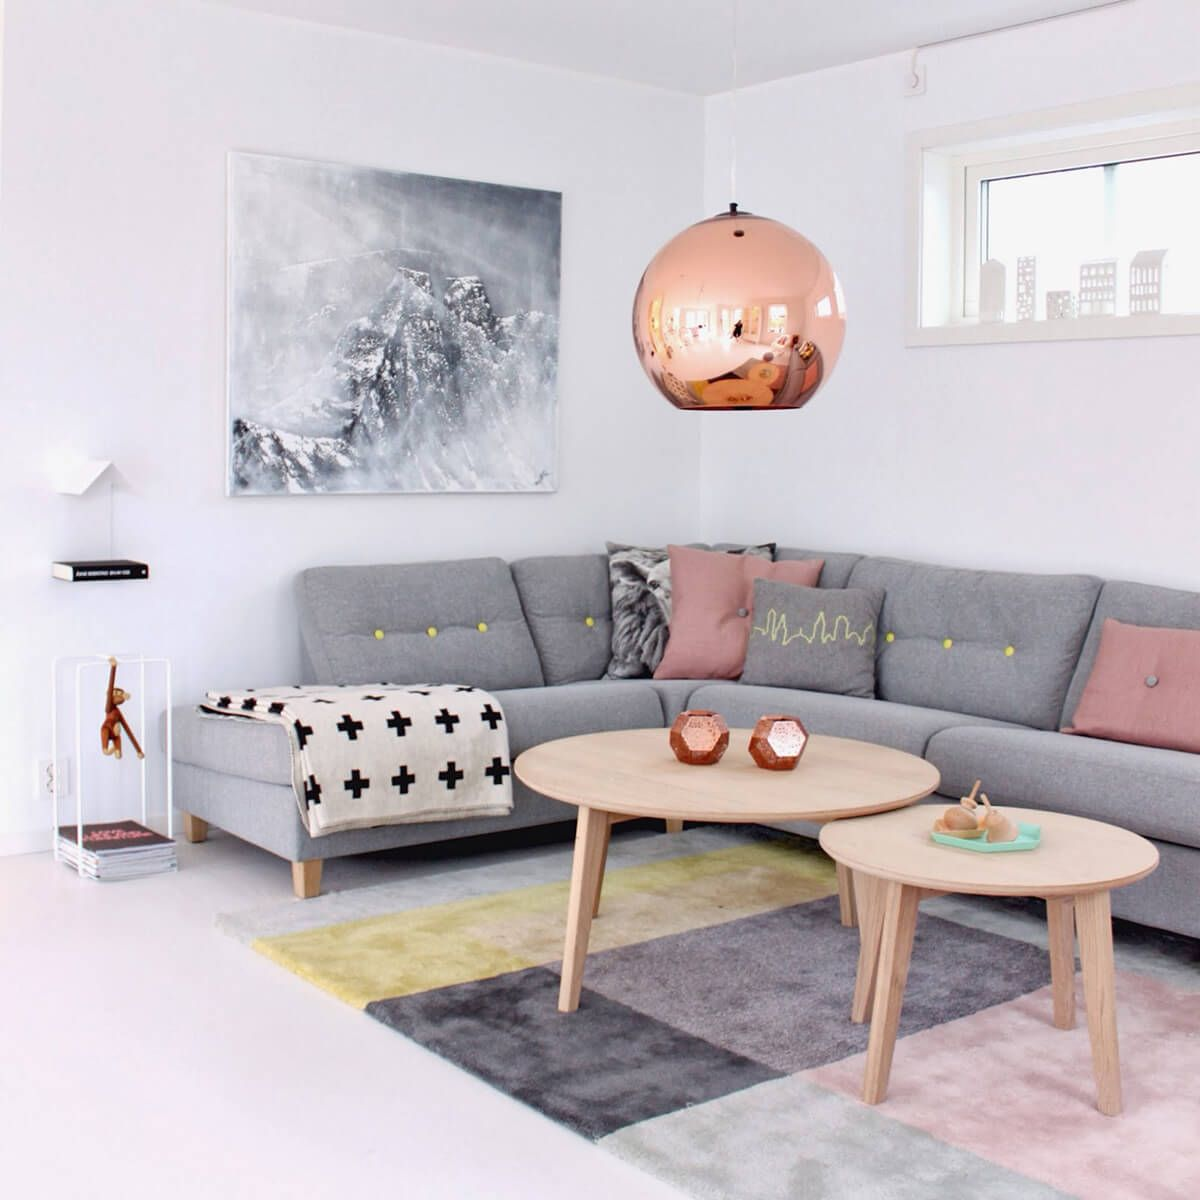 23 Irresistible Copper And Blush Home Decor Ideas That Will Make You Swoon Living Room Grey Living Room Decor Room Decor Copper living room decor